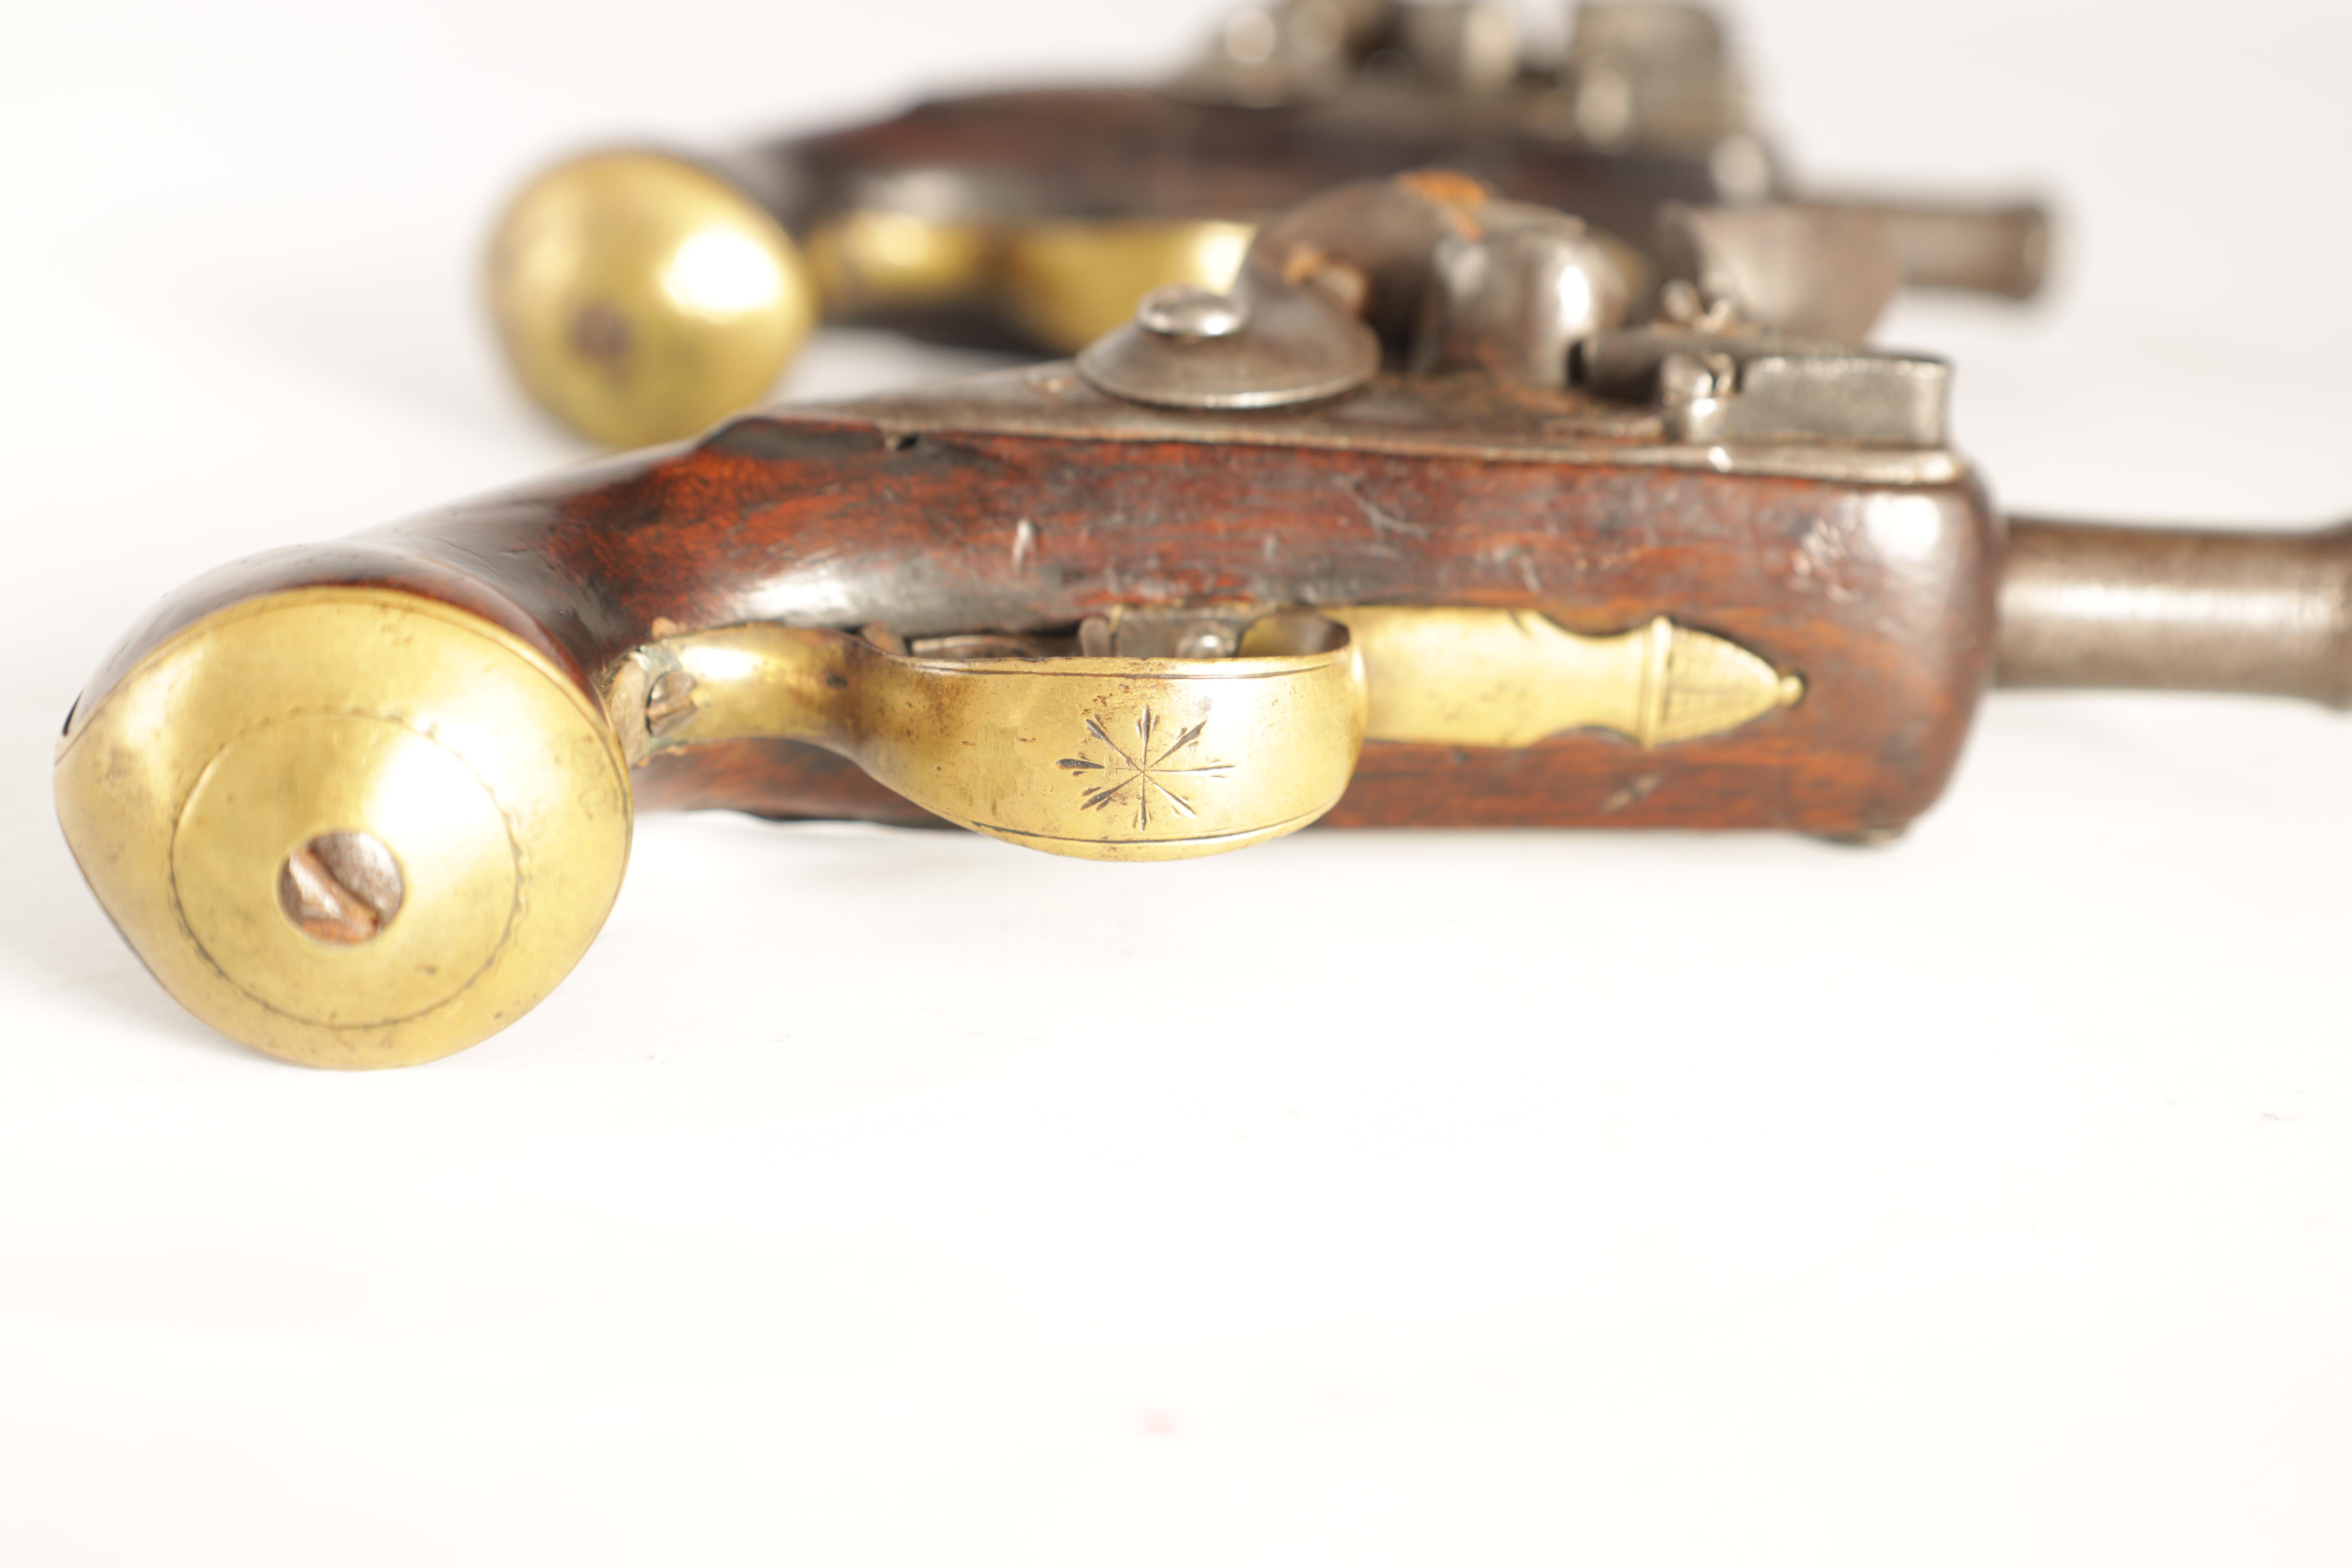 T. JONES. A PAIR OF EARLY 18TH CENTURY FLINTLOCK POCKET PISTOLS with turn-off cannon barrel, - Image 5 of 14